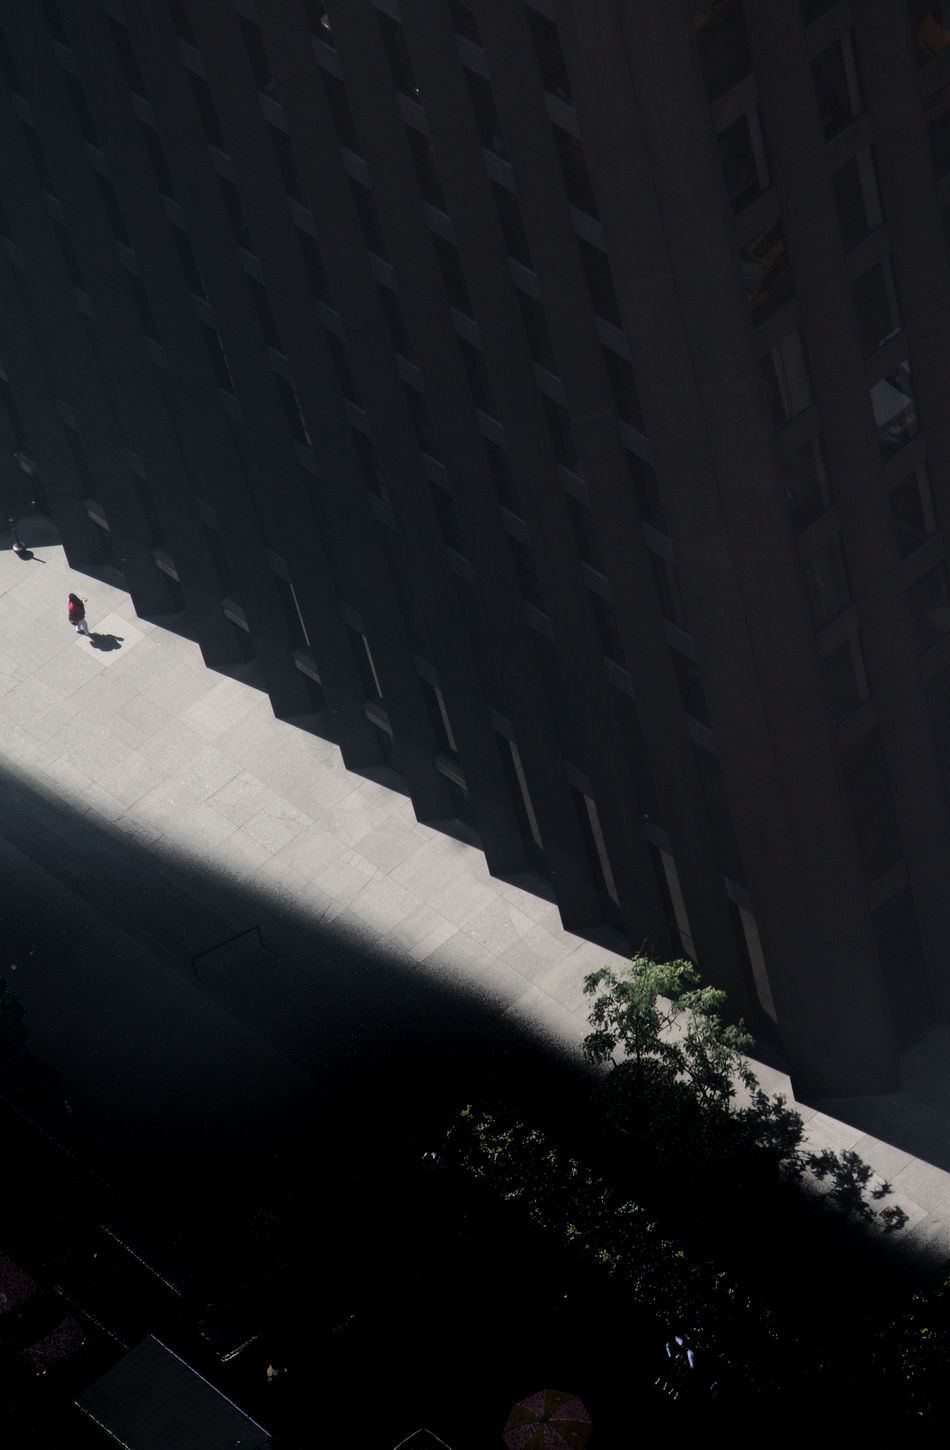 the lonely souls wandering New York Architecture Geometric Shape NYC Photo Of The Day Solitude Stranger The One